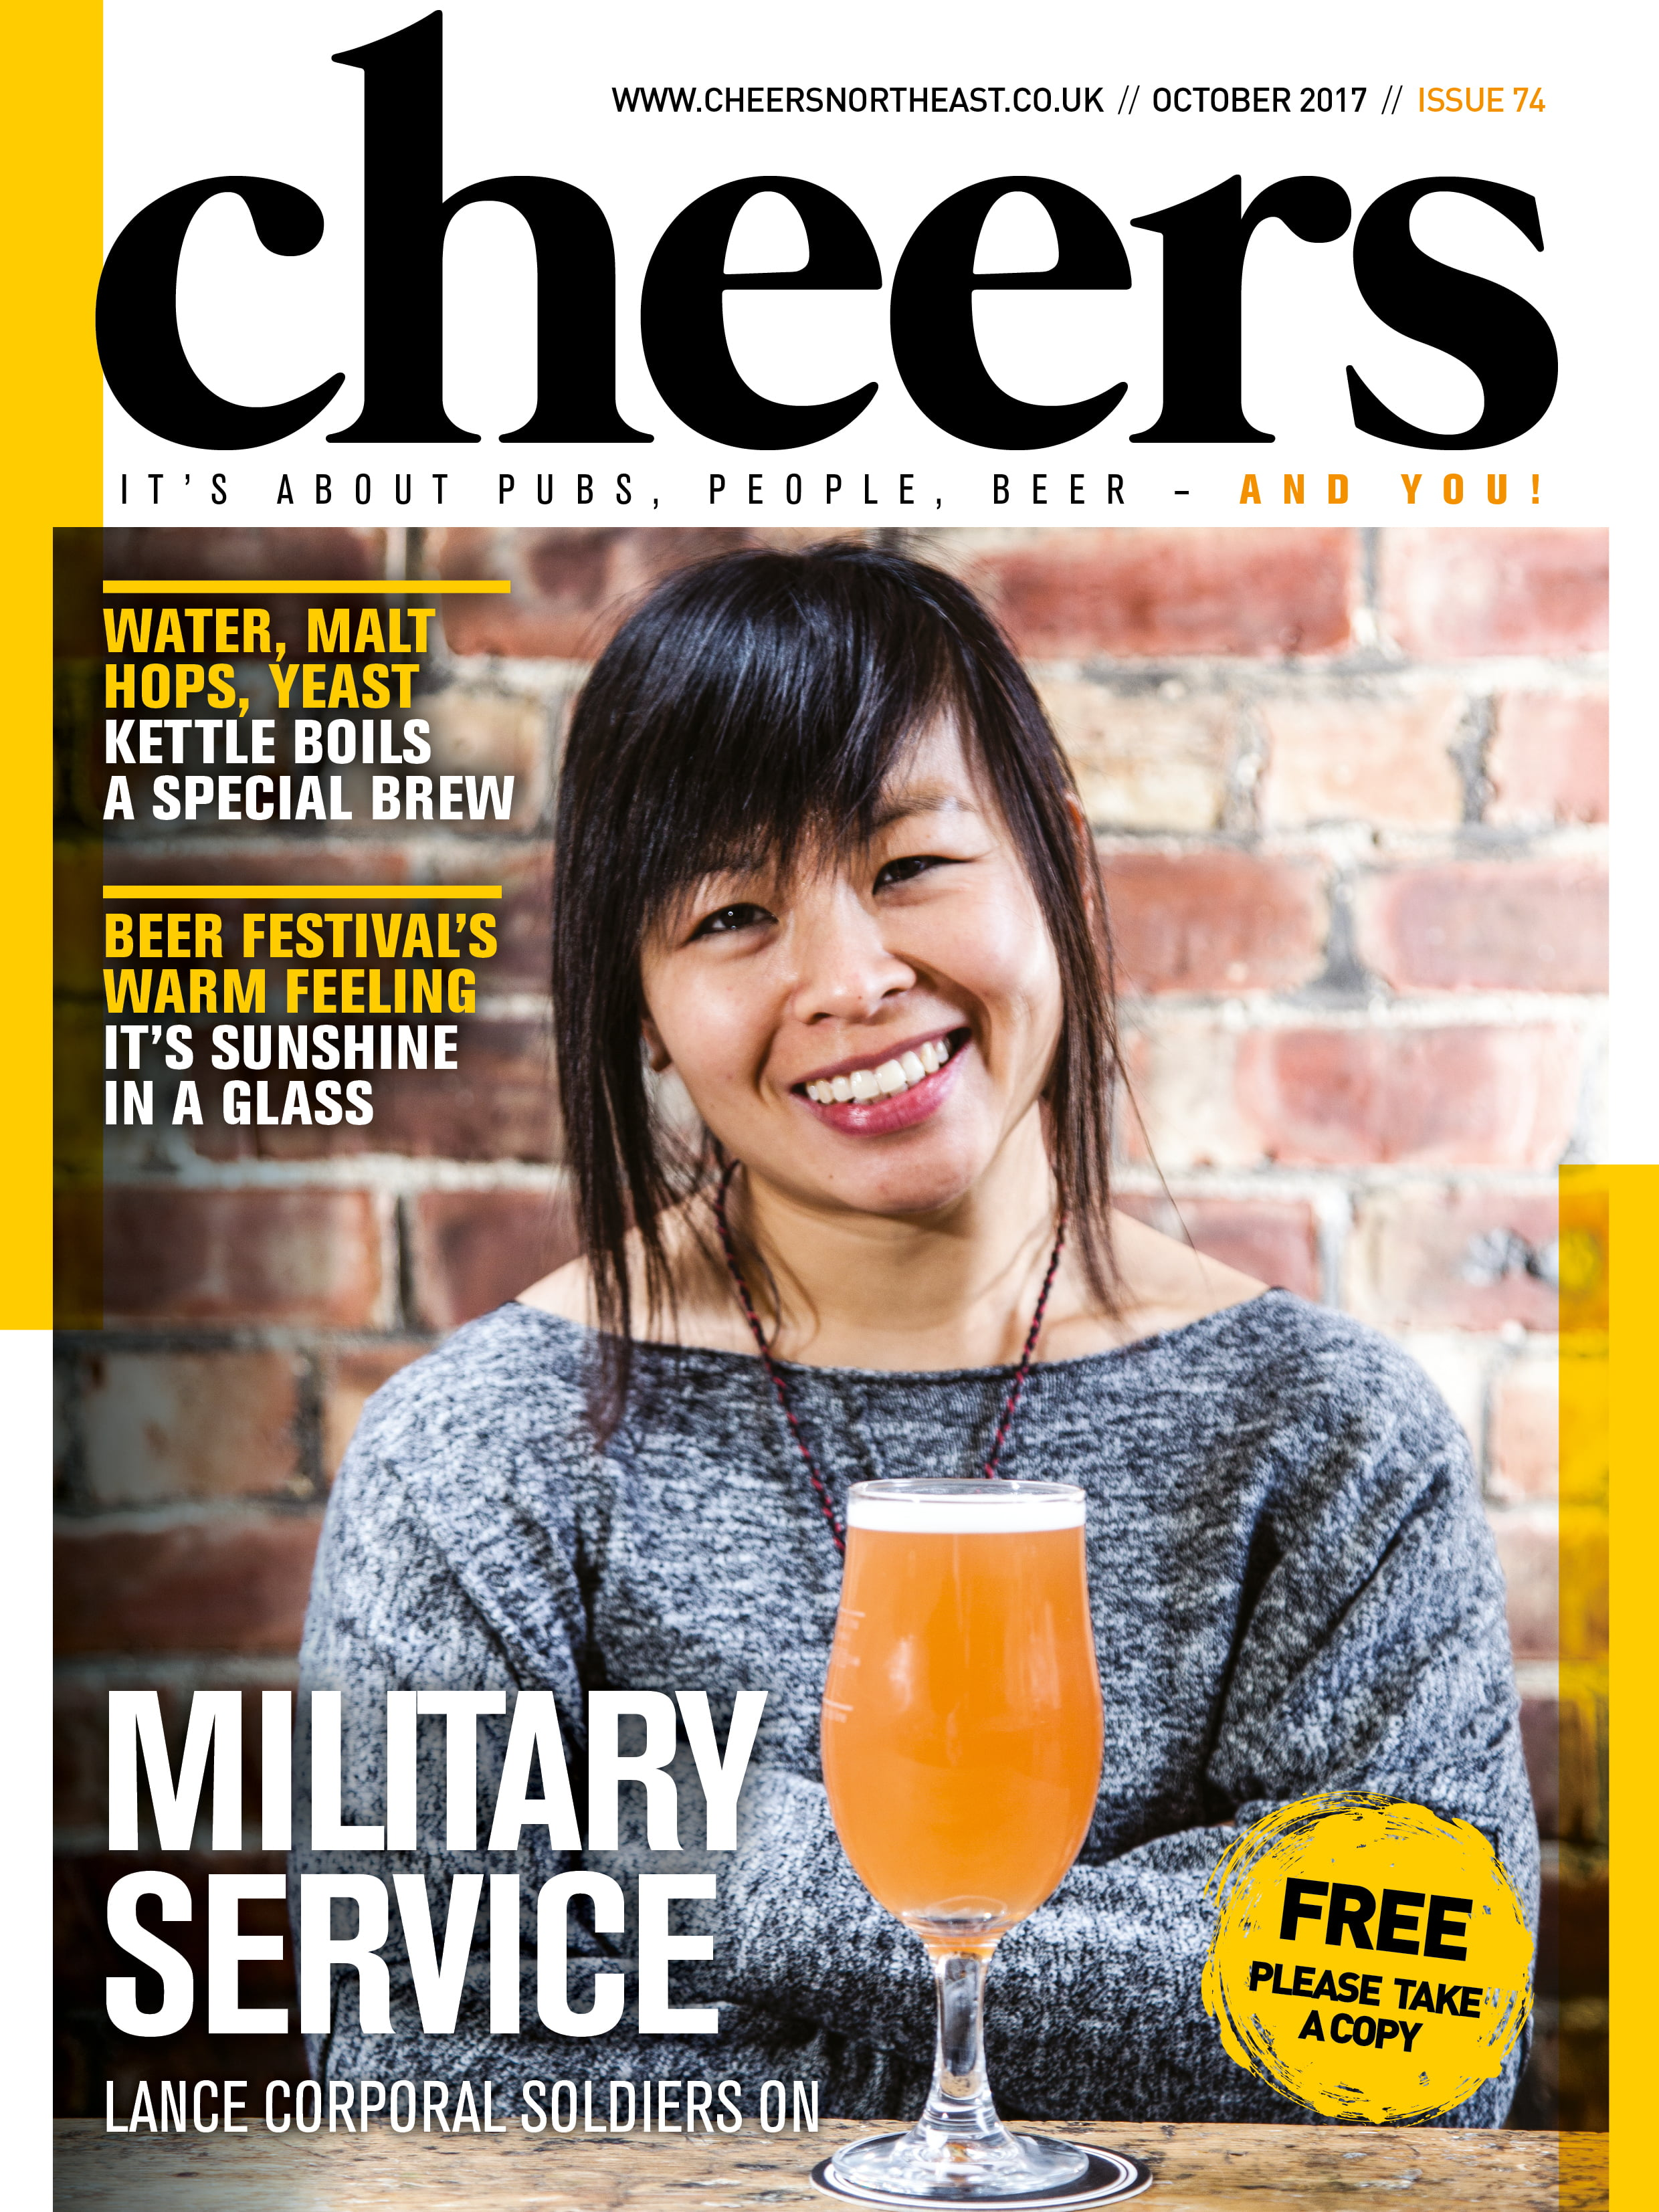 Cheers issue 74